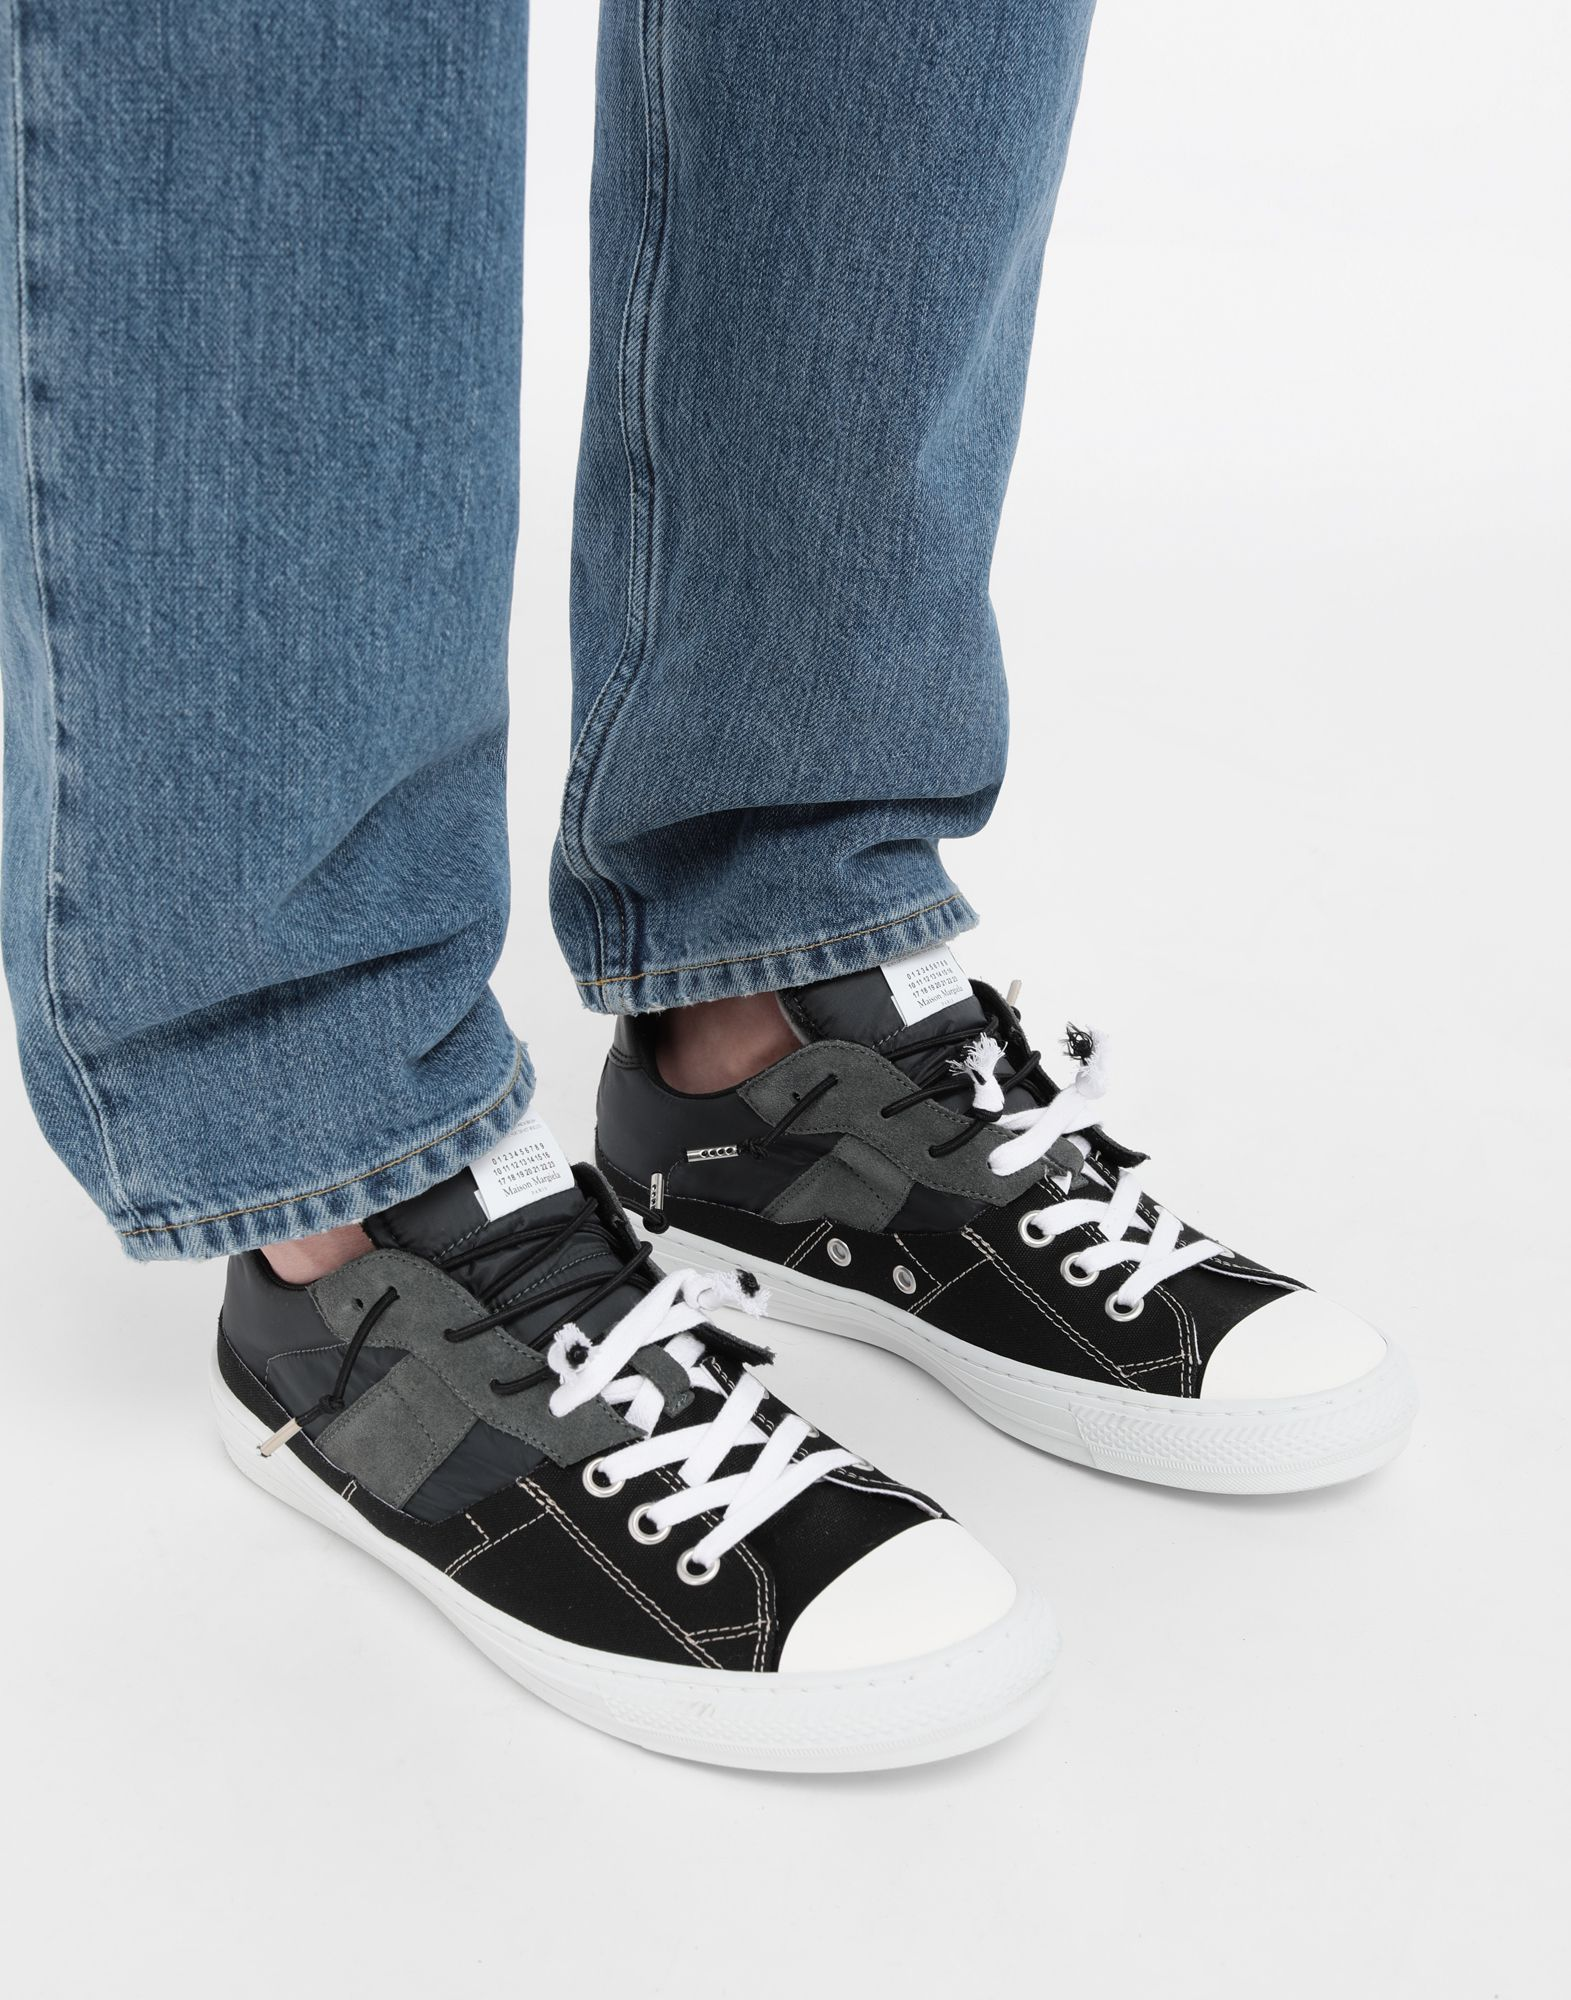 MAISON MARGIELA Spliced low top sneakers Sneakers Man b